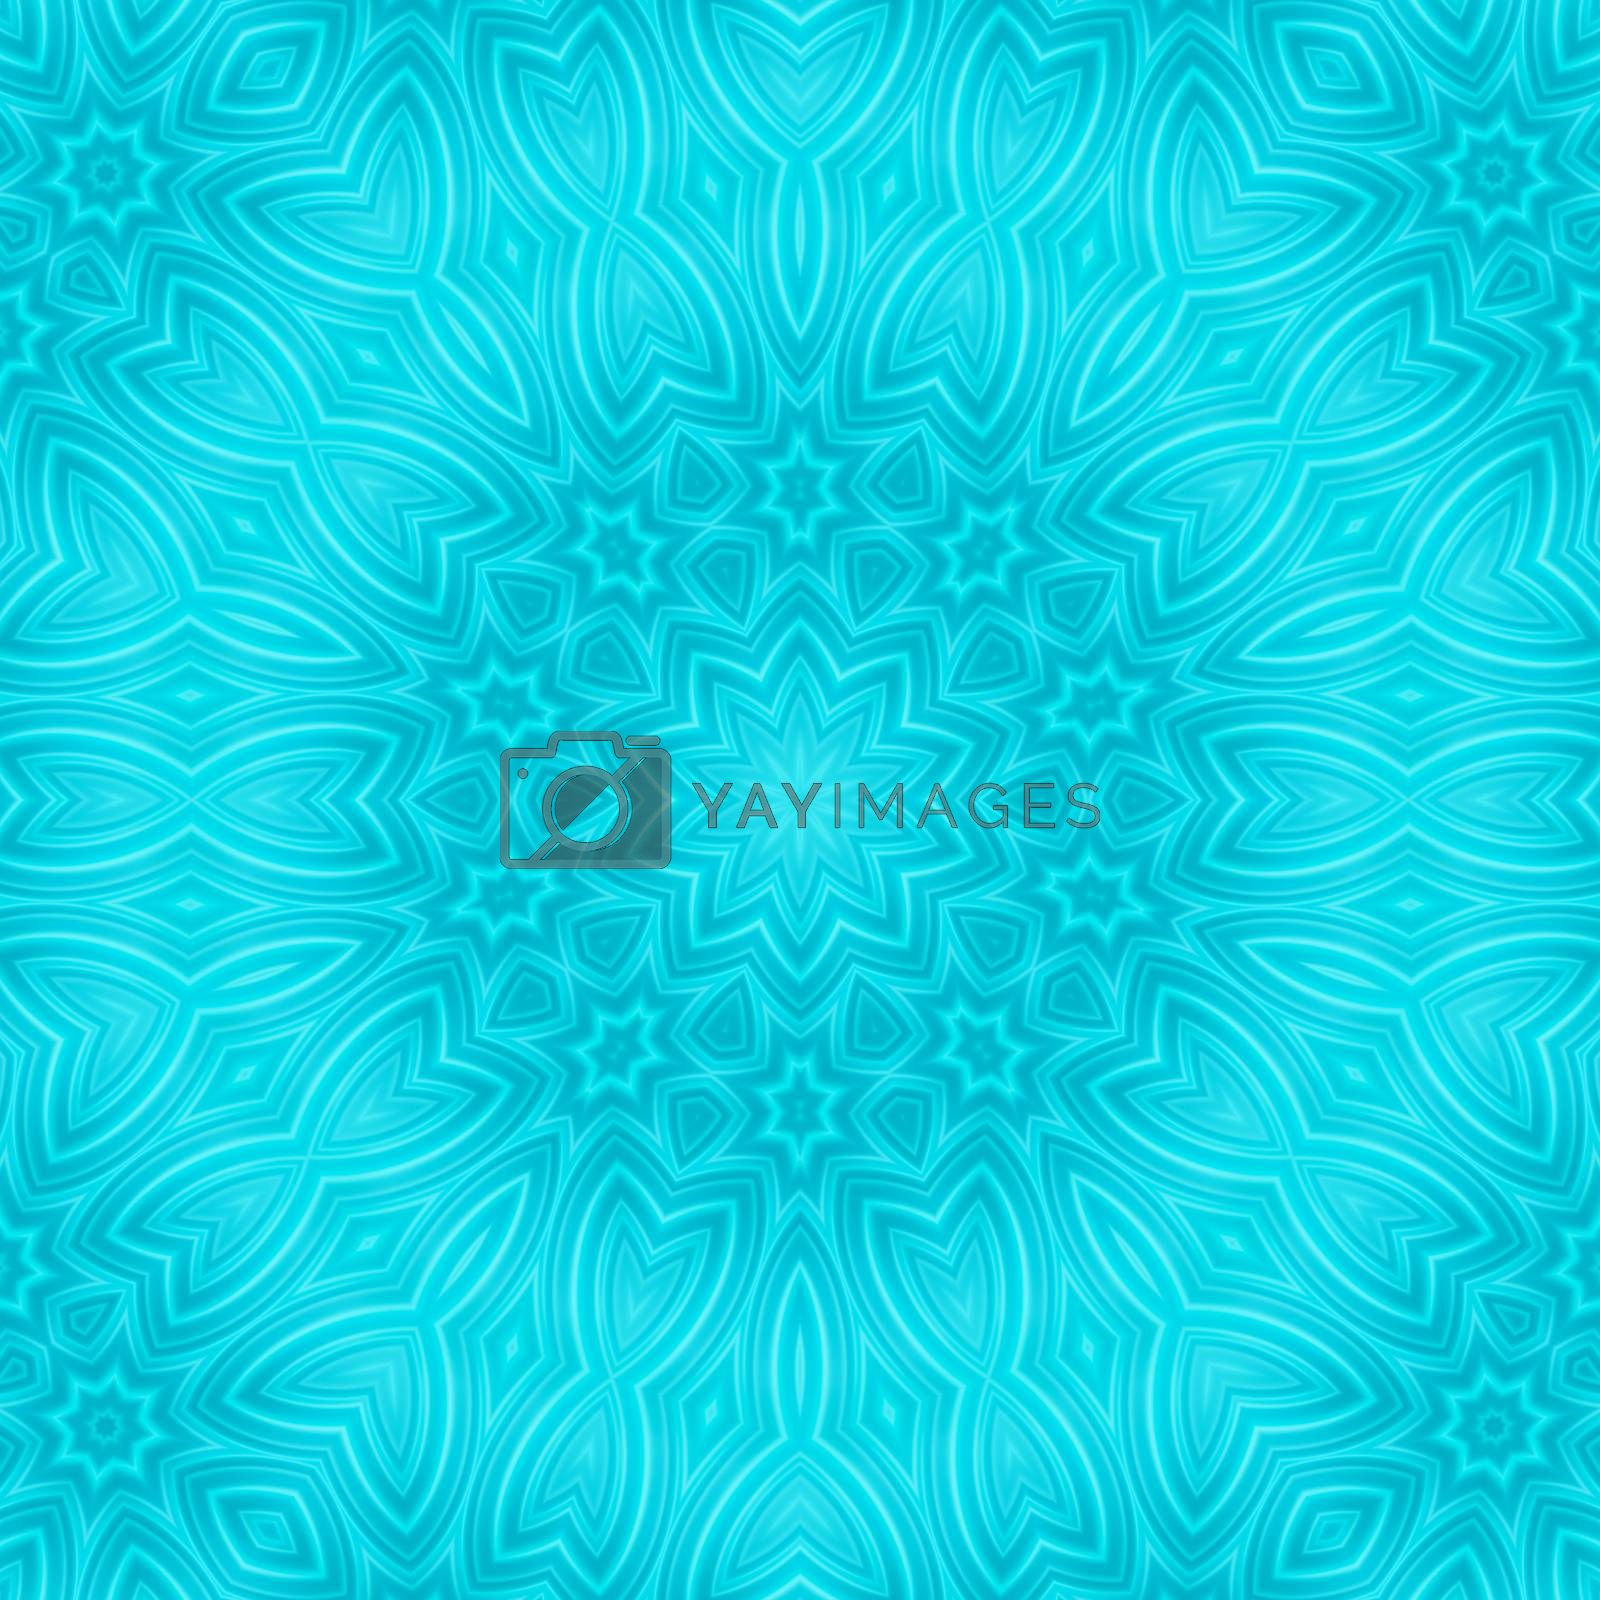 Blue background with abstract concentric pattern